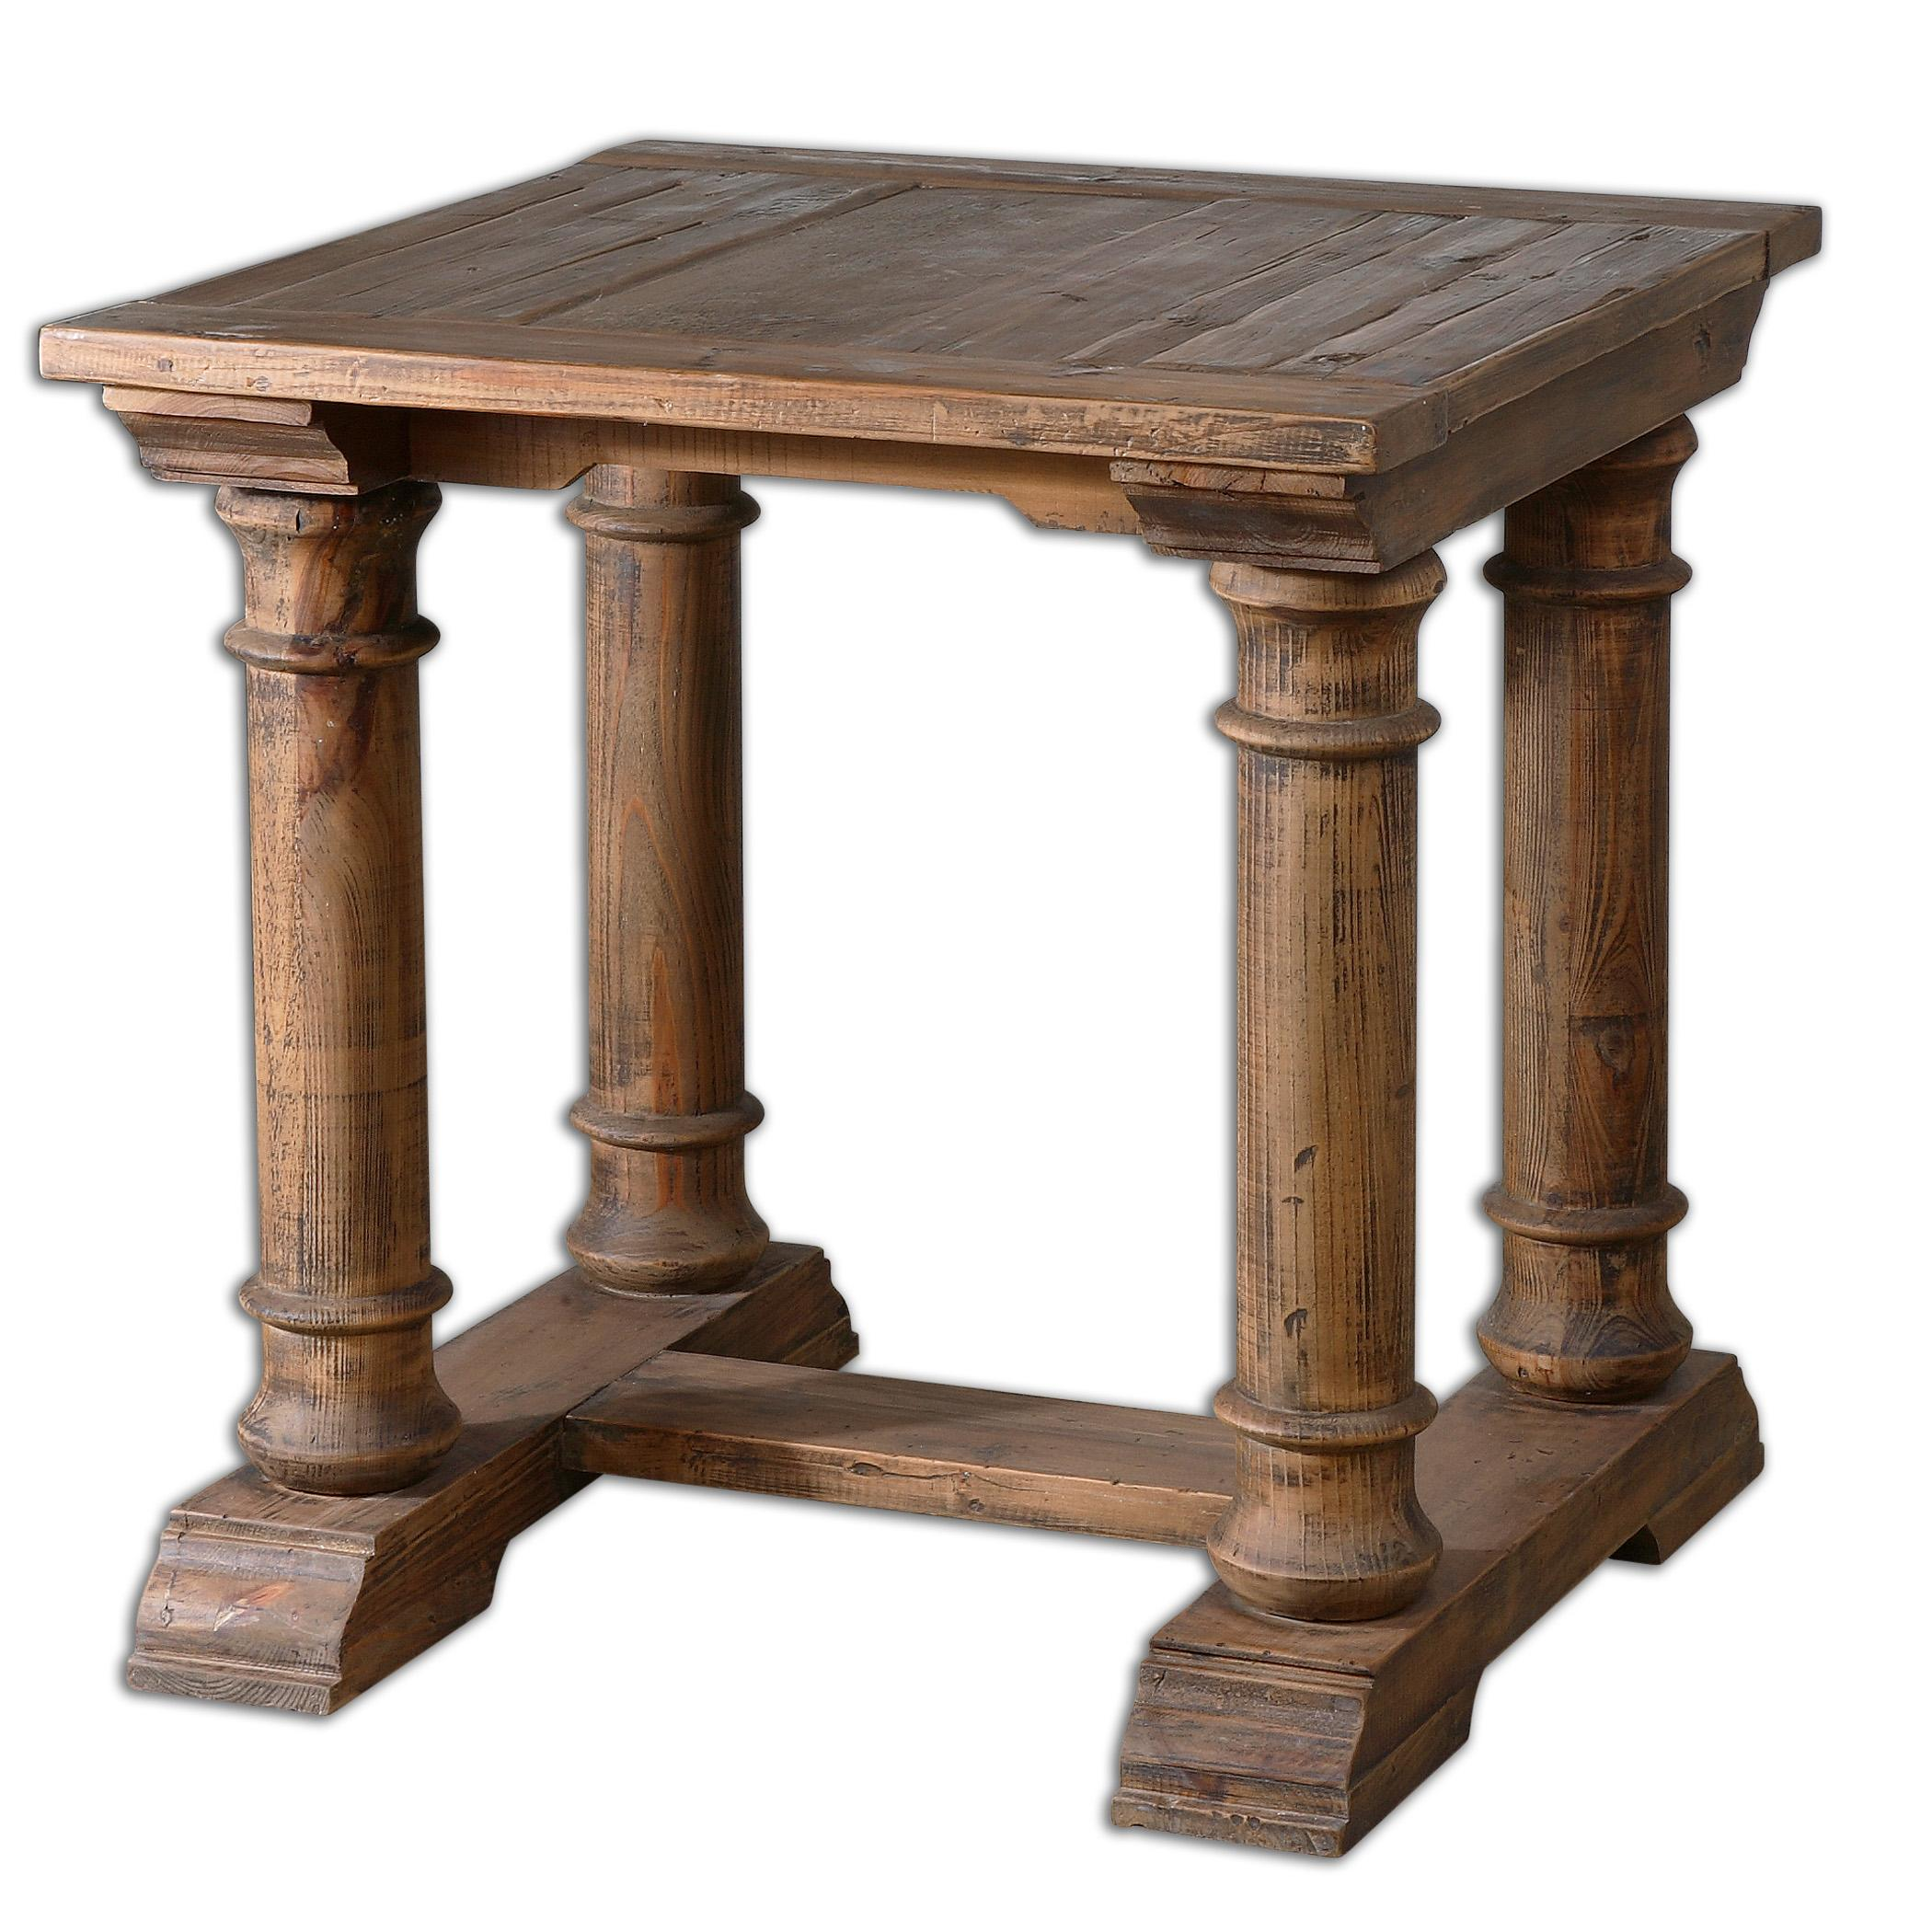 Uttermost Accent Furniture Saturia Wooden End Table - Item Number: 24341